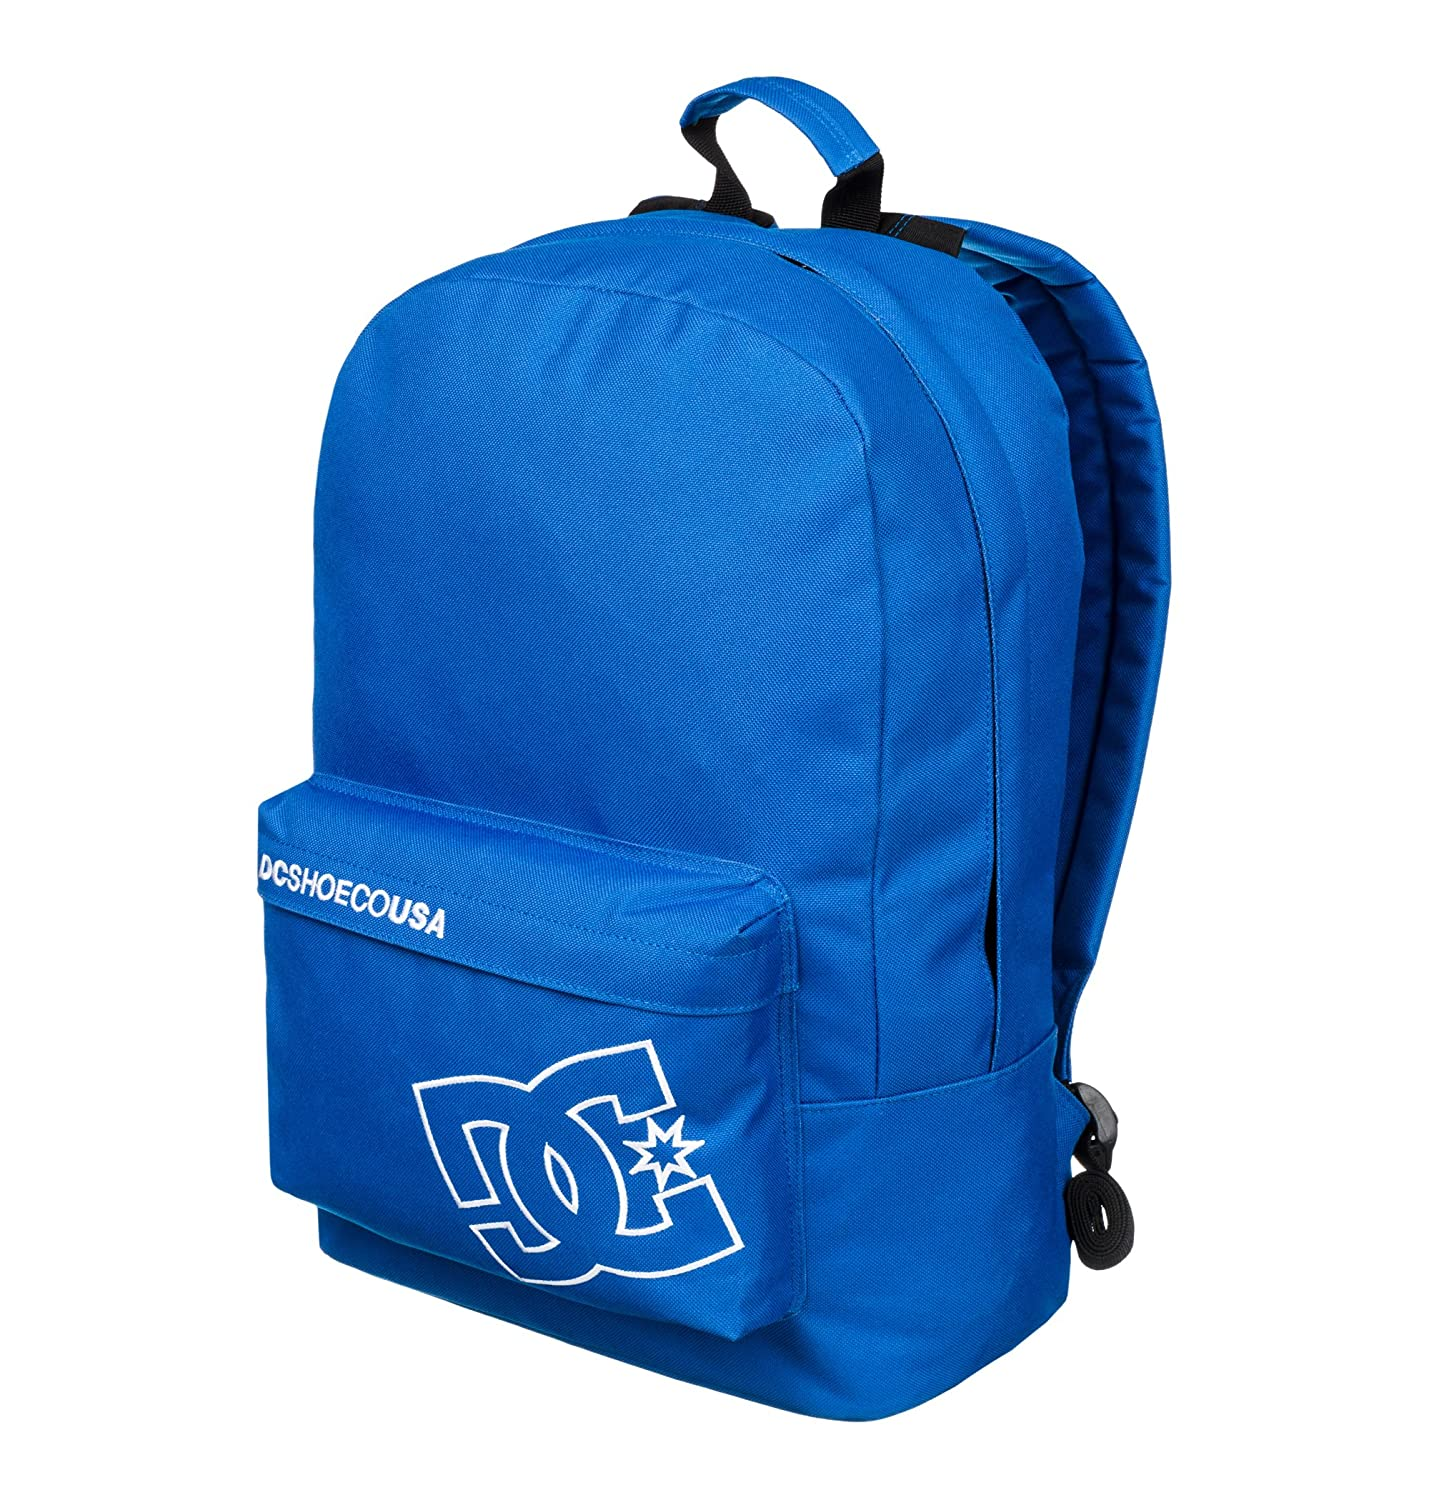 8dd180e7912 DC Shoes Mens Bunker Solid Backpack ADYBP03000 Nautical Blue: Amazon.co.uk:  Shoes & Bags